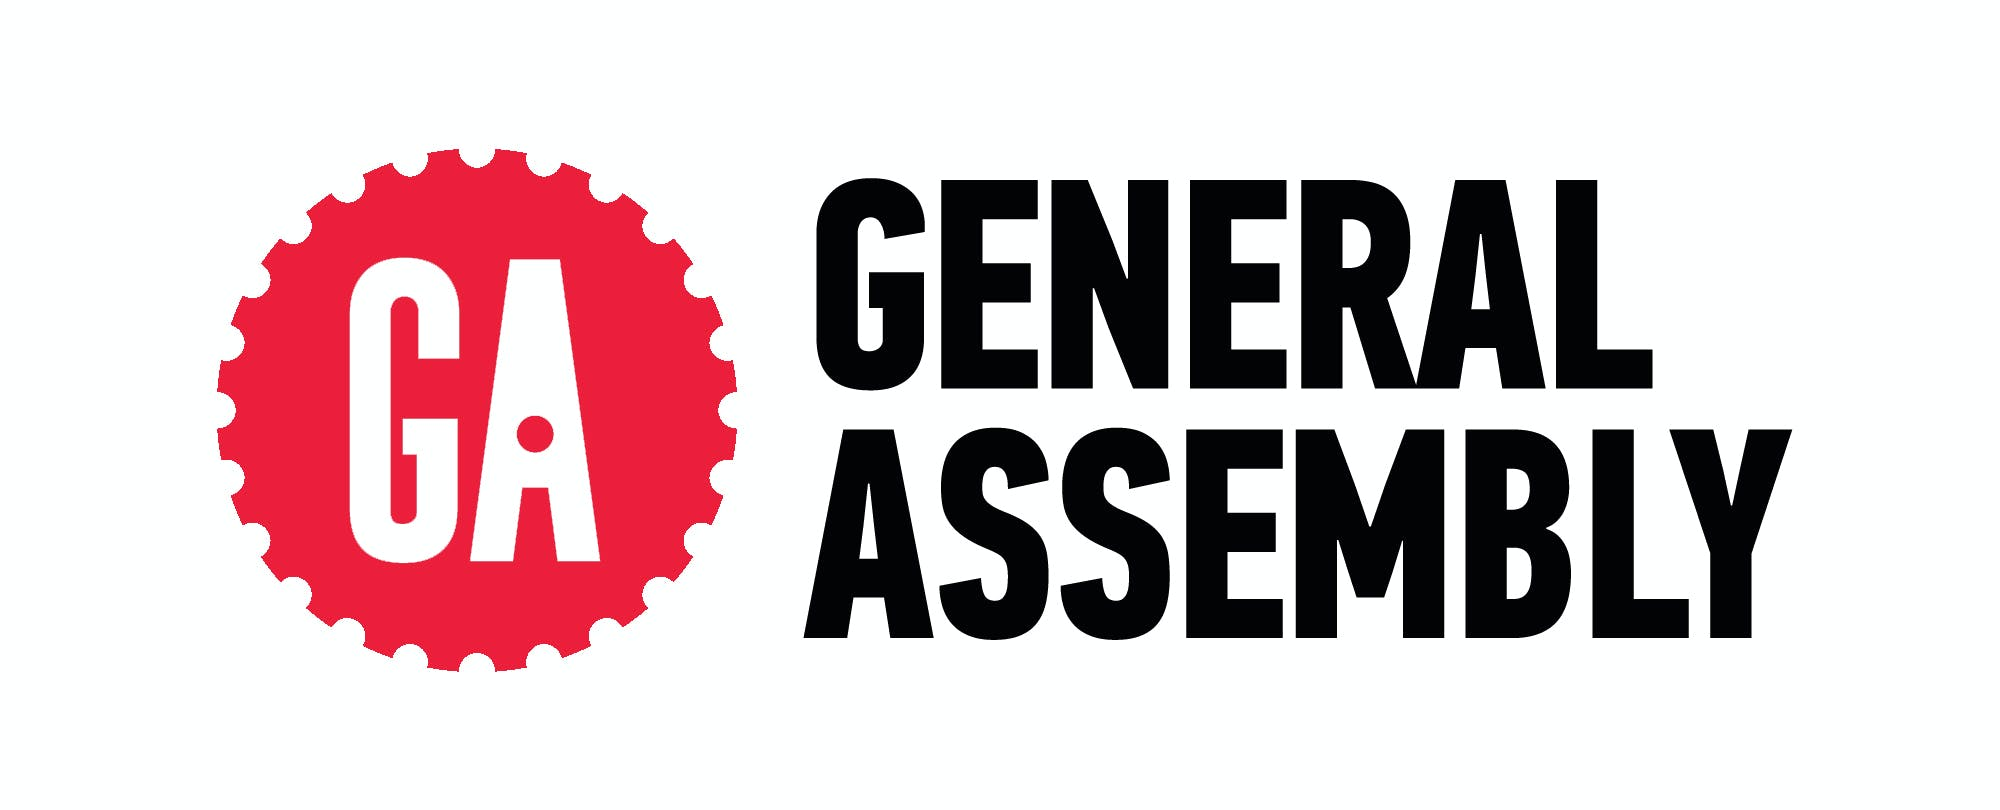 General Assembly to Be Acquired By Swiss HR Firm for $412.5 Million